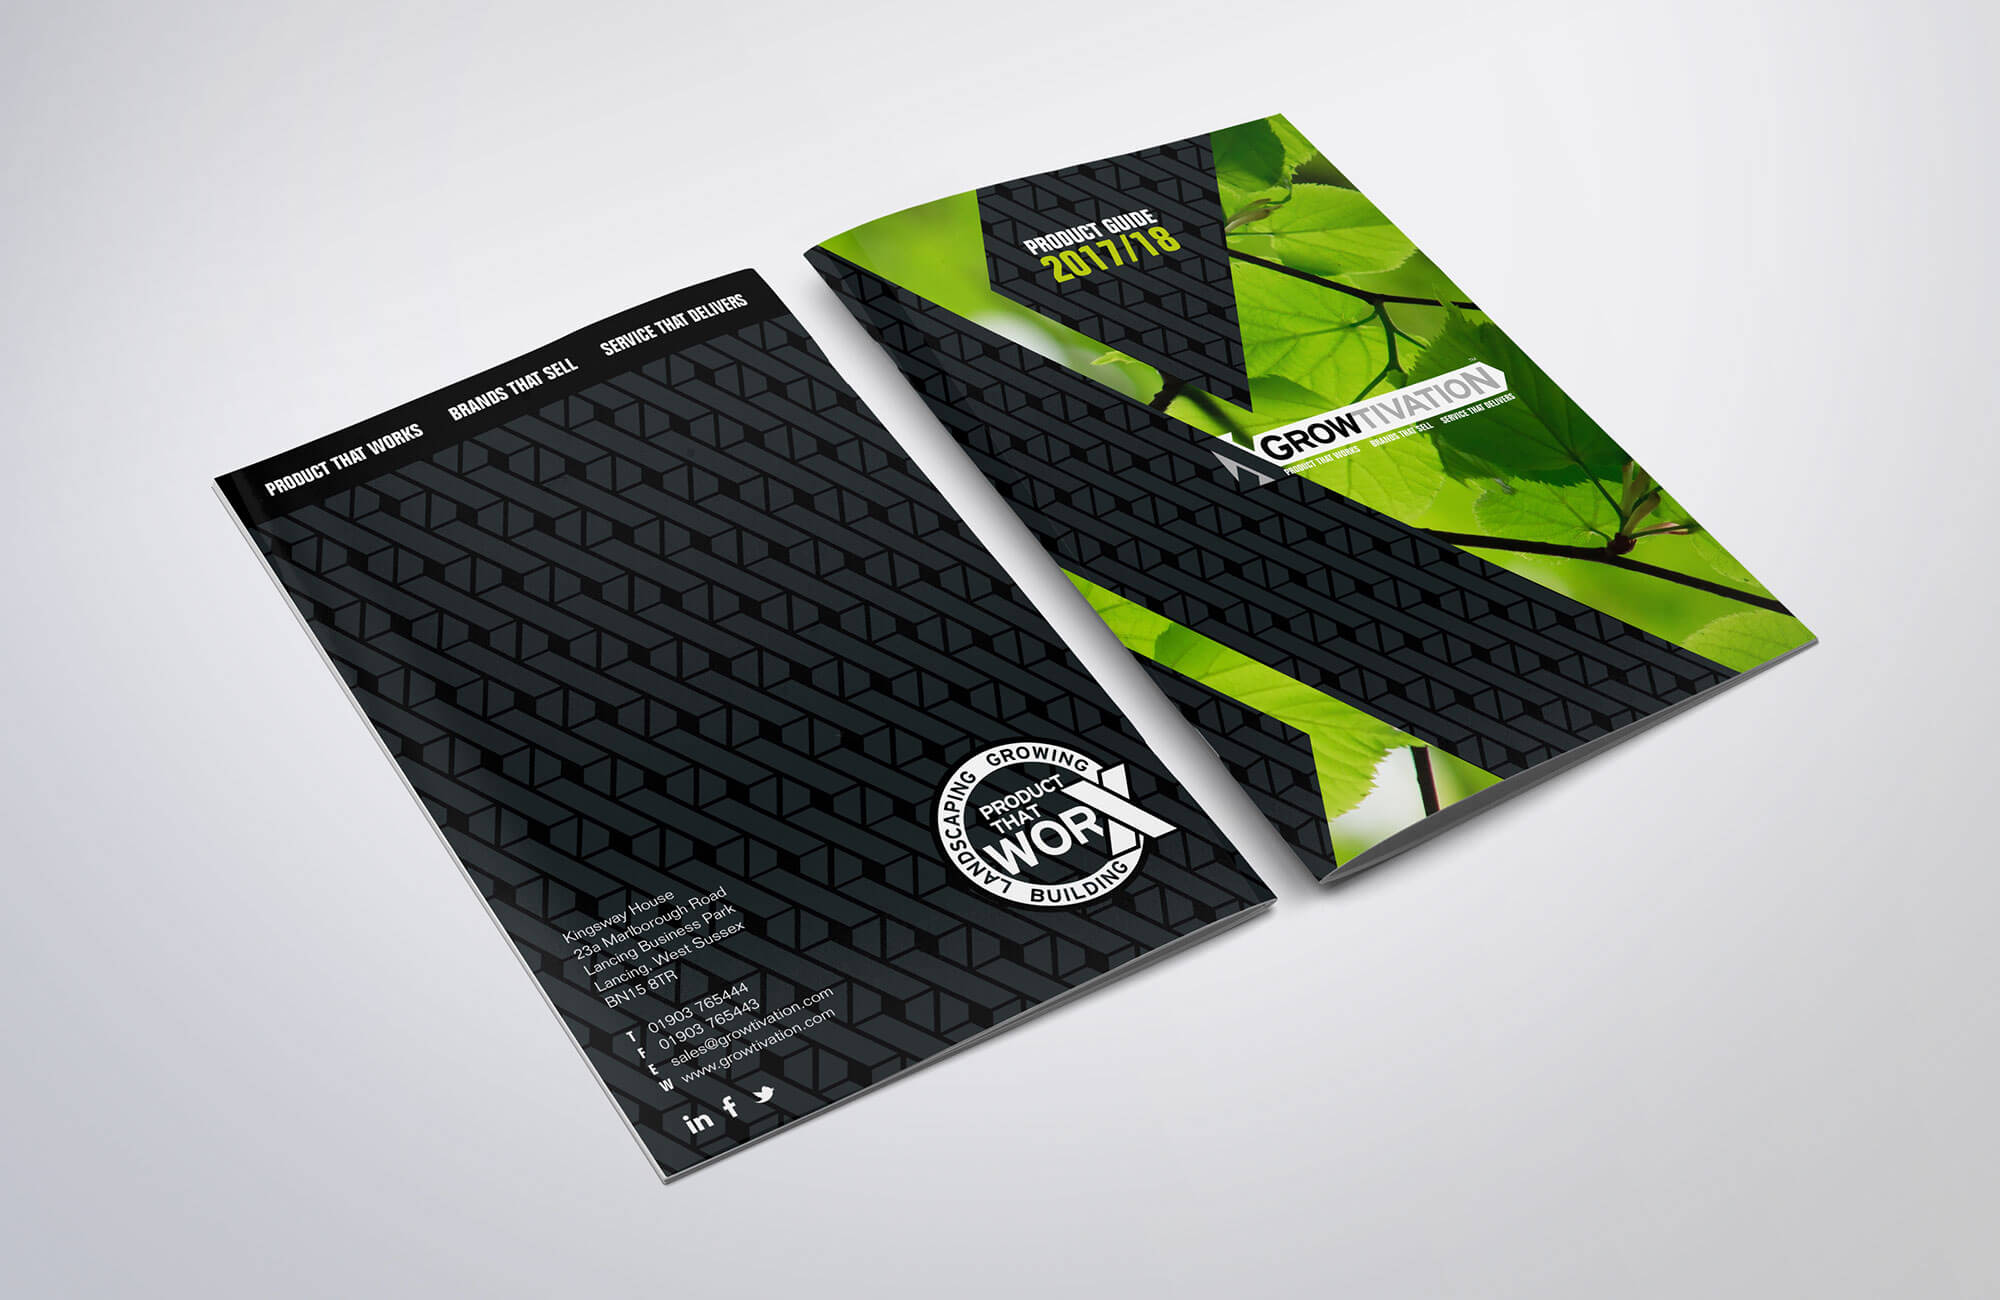 Growtivation Product Guide Design and Printing